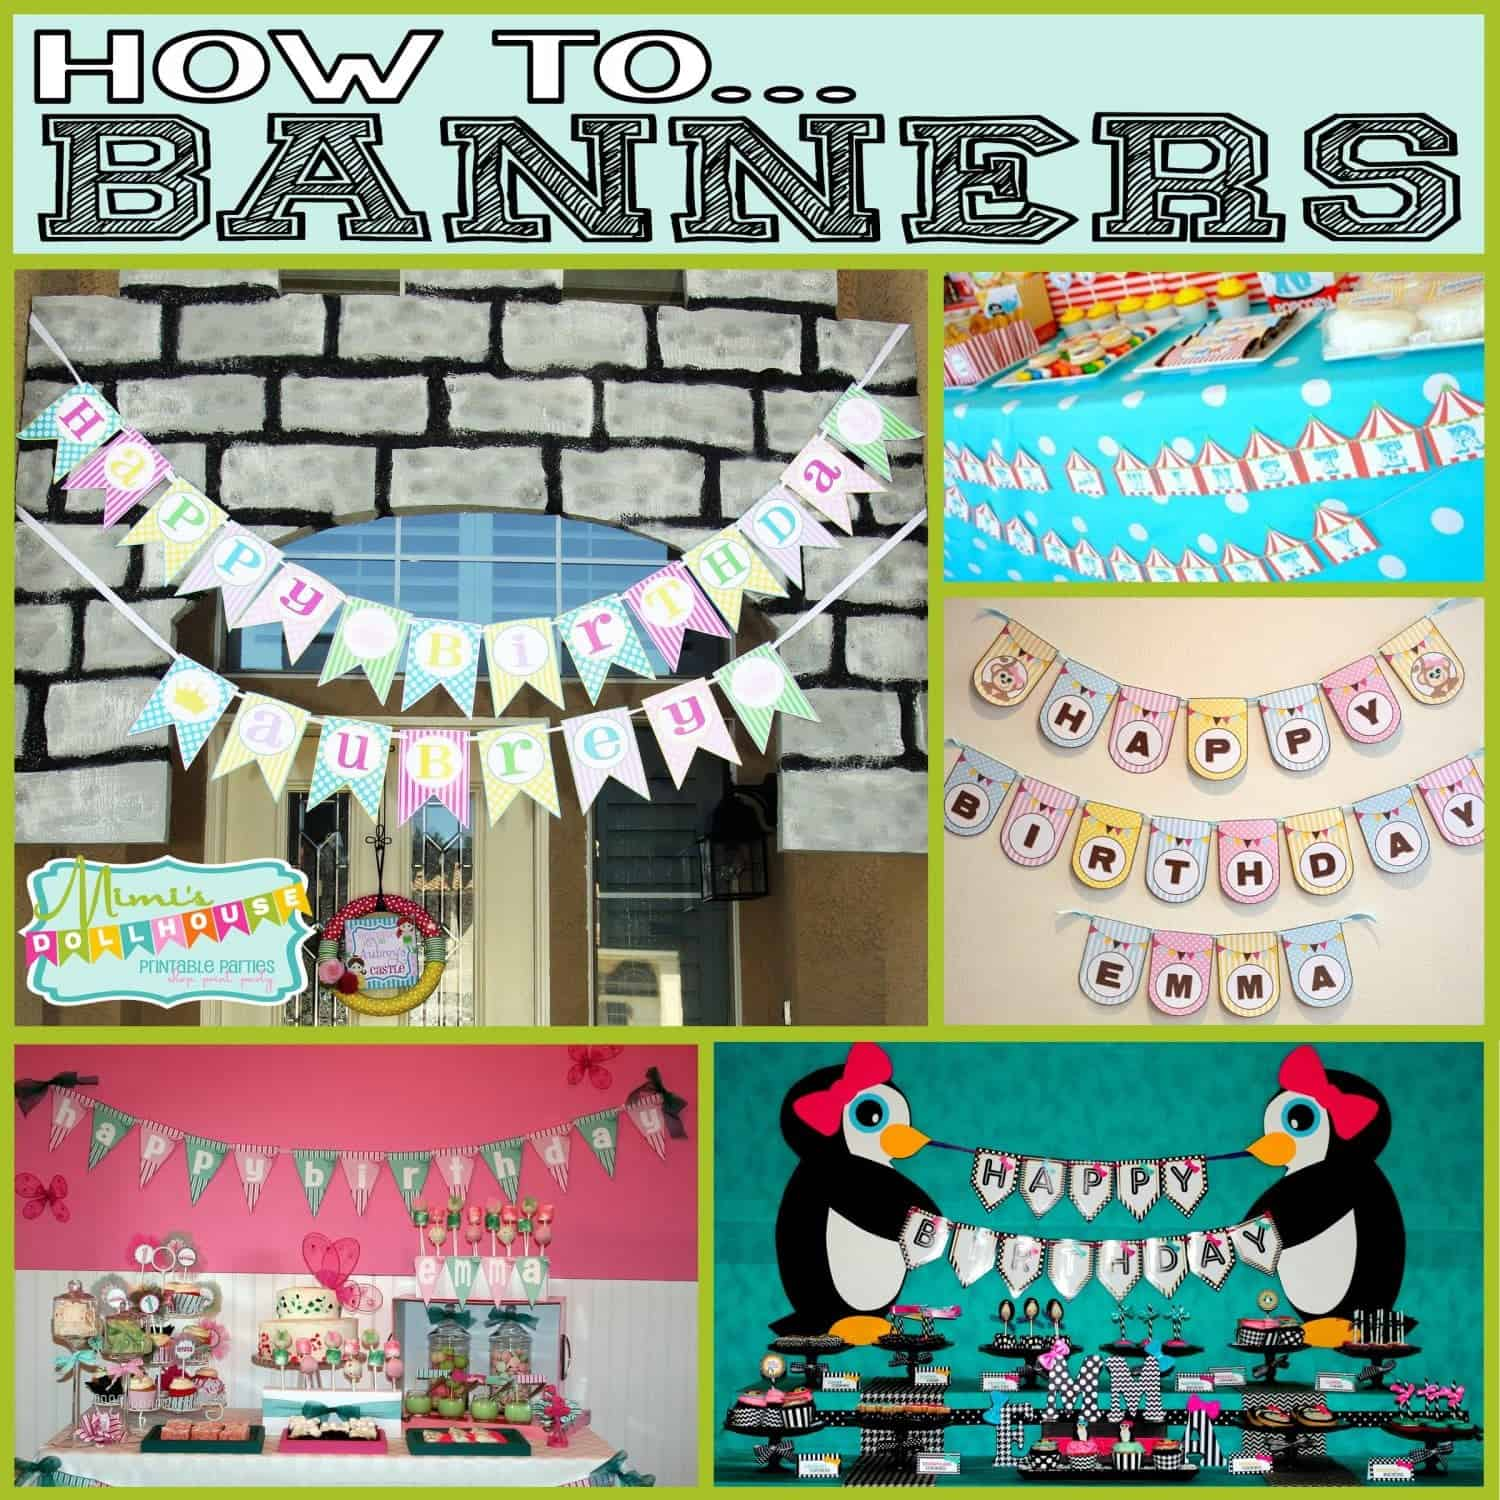 How to…Assemble and Hang a Banner